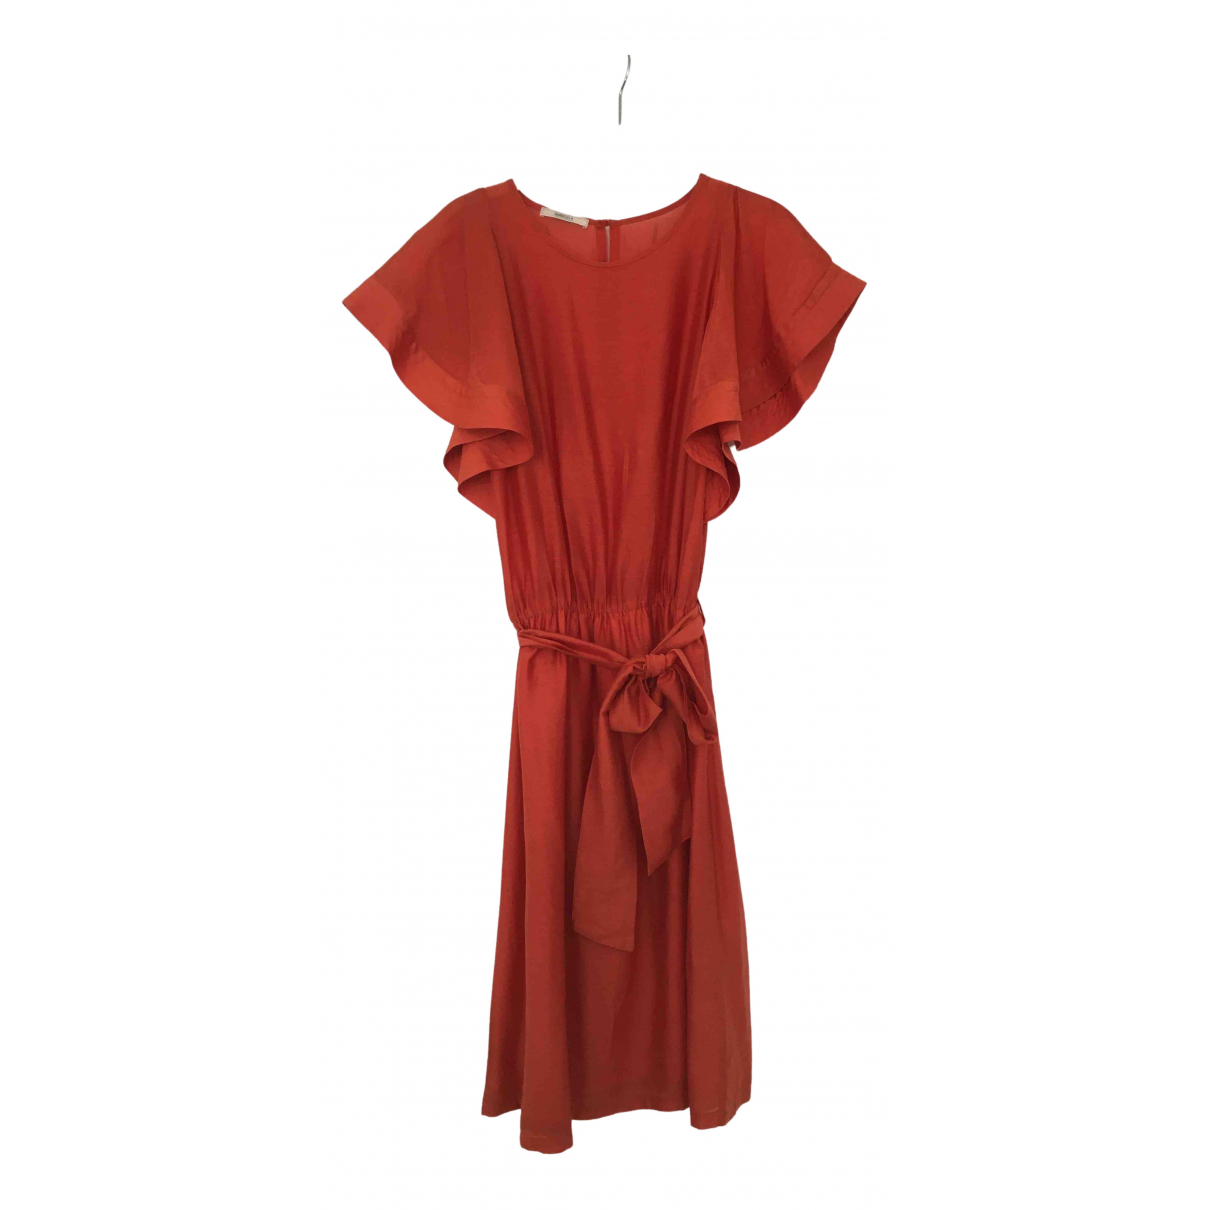 Sessun \N Orange dress for Women S International